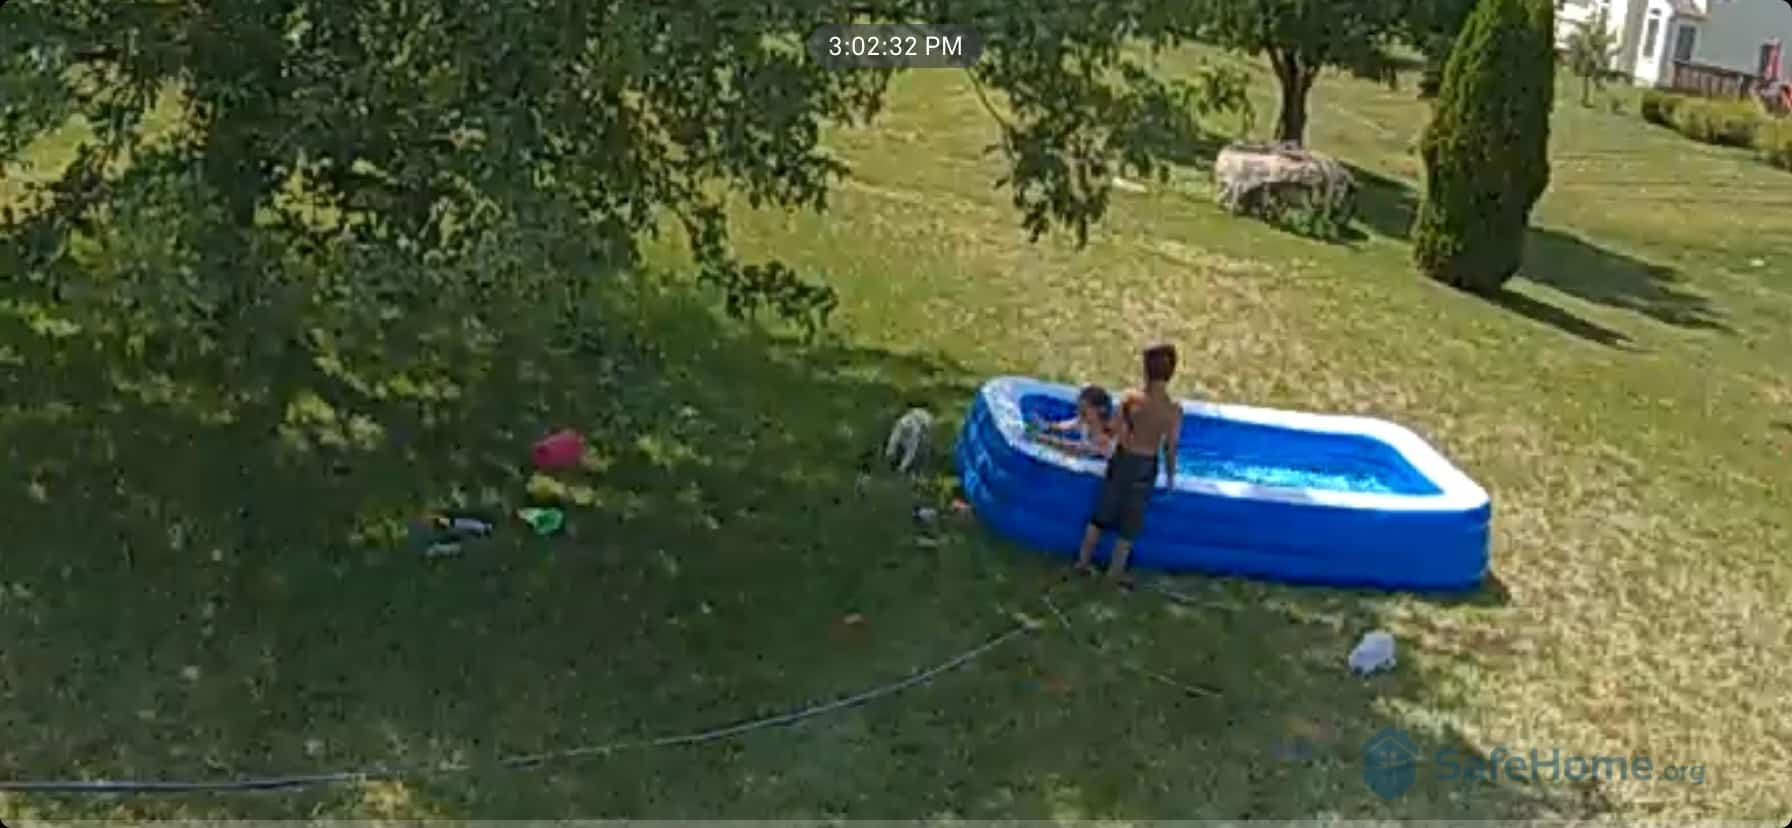 IQ outdoor cam view; watching over the youngins.